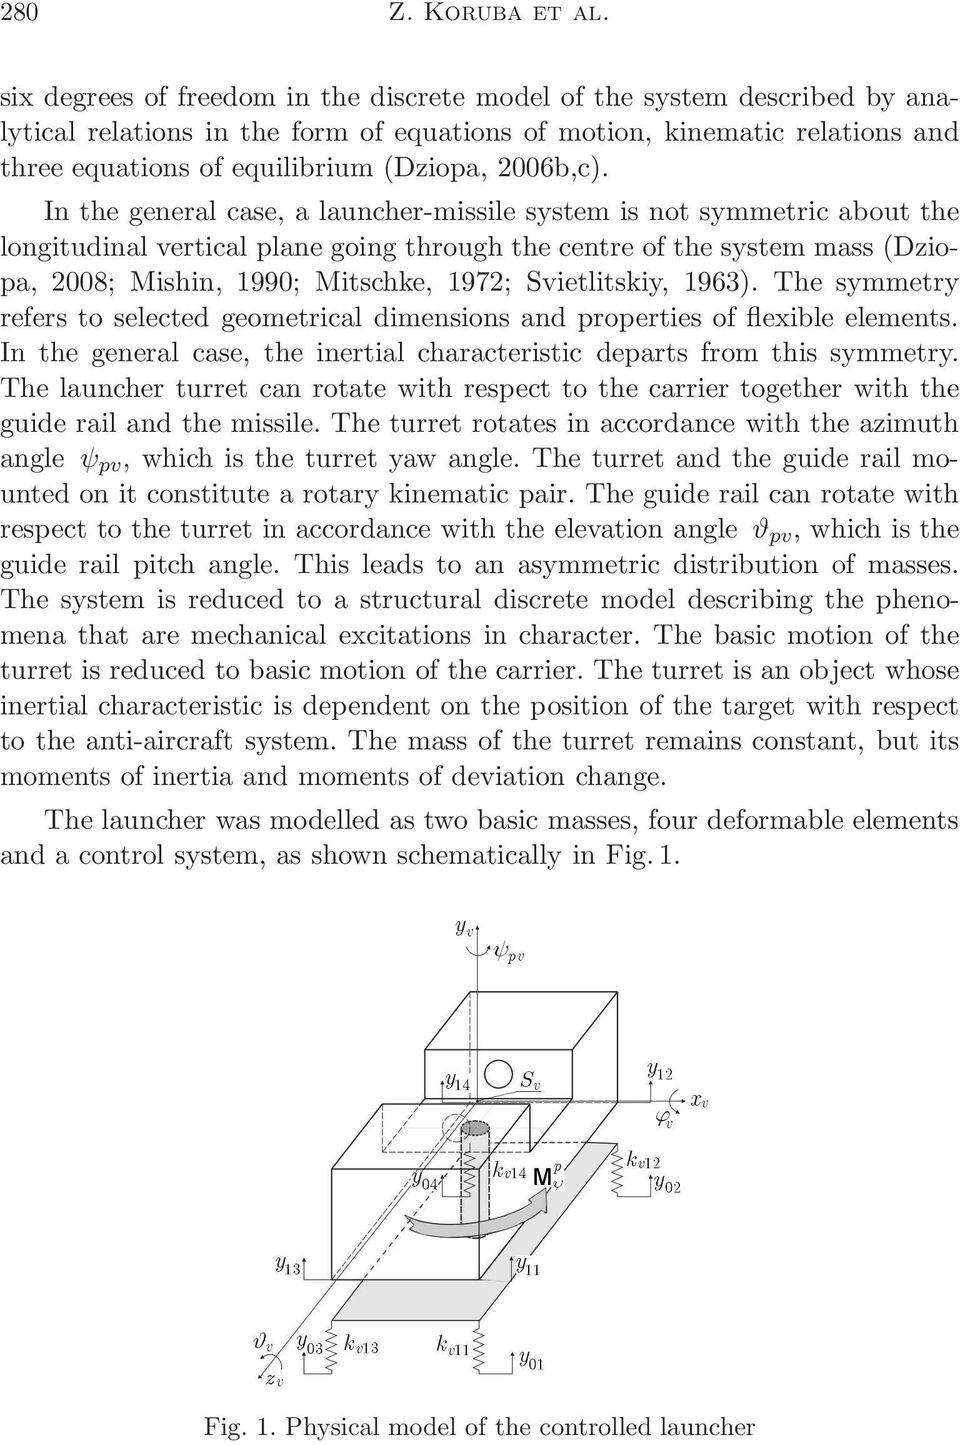 In the general case, a launcher-missile system is not symmetric about the longitudinal vertical plane going through the centre of the system mass(dziopa, 2008; Mishin, 1990; Mitschke, 1972;